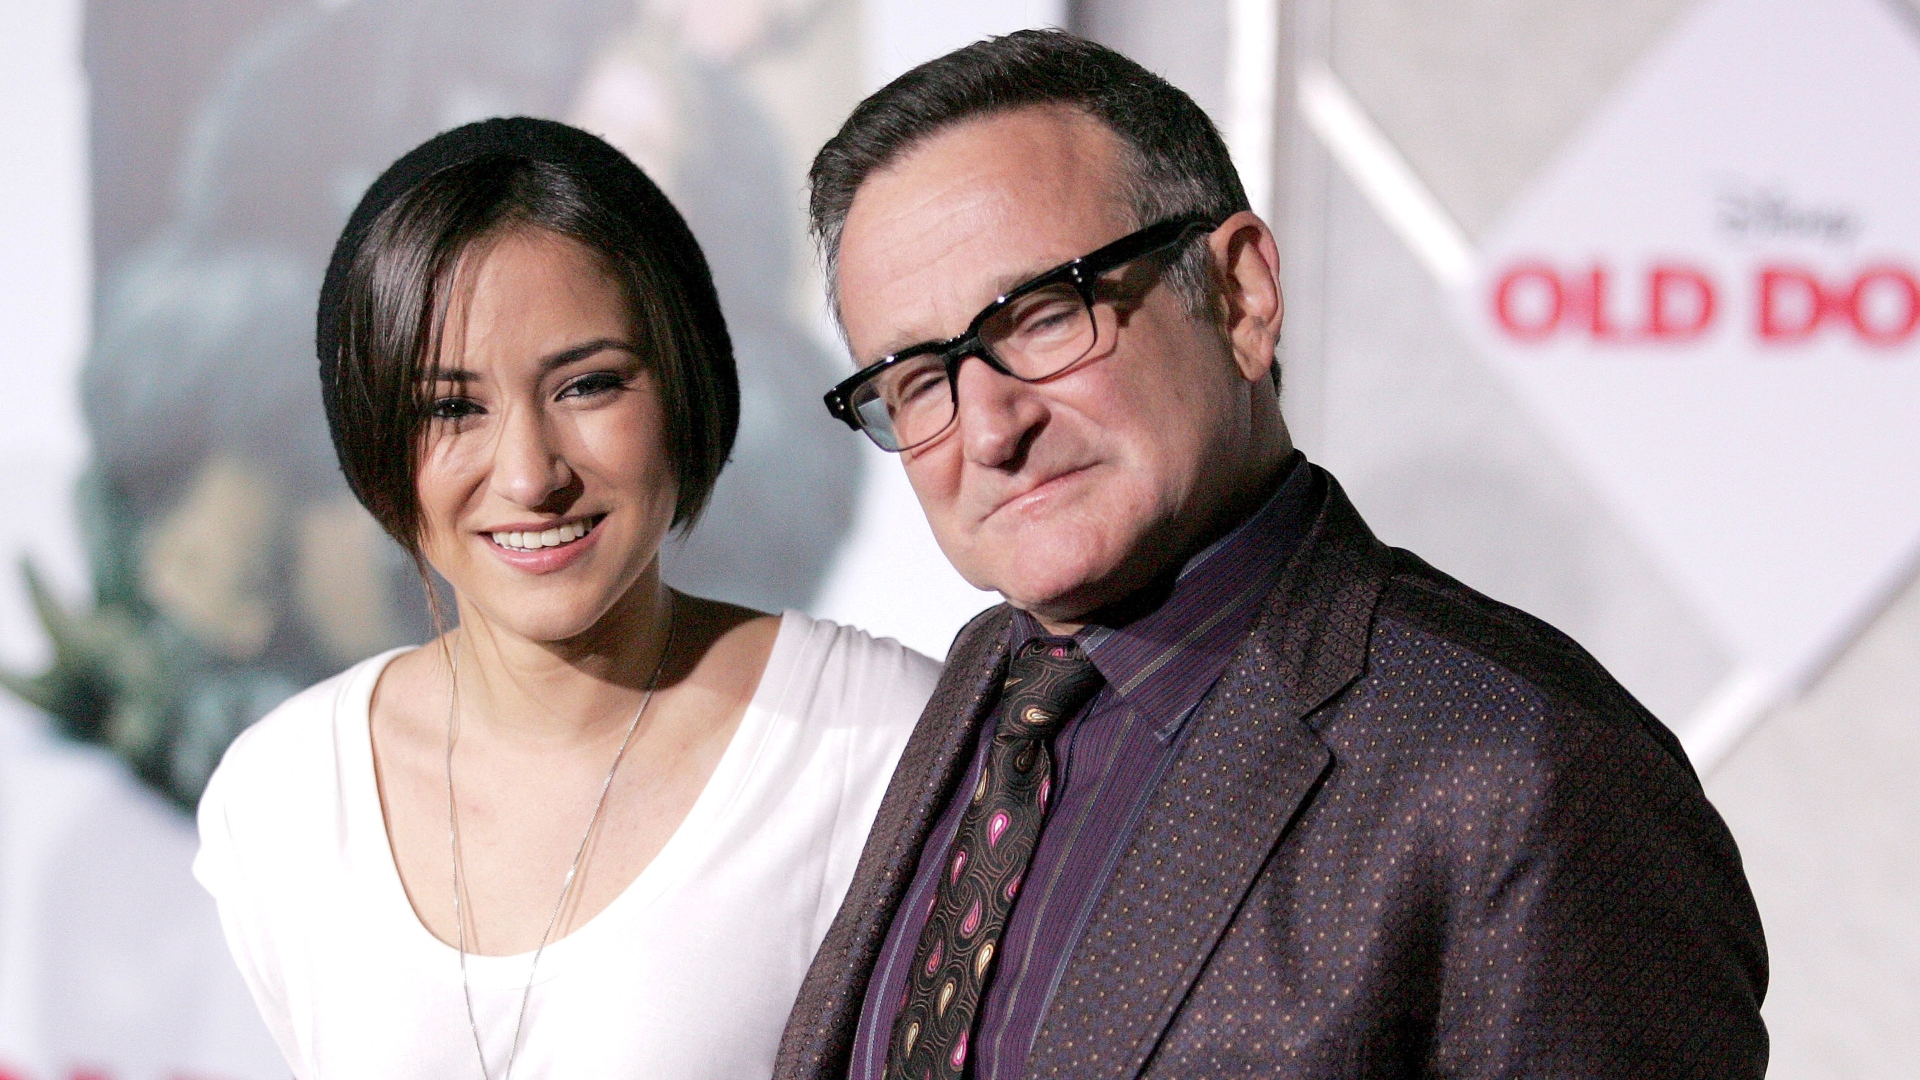 Robin Williams S Daughter Just Shared Sweet Throwback Photo Of Her Dad Sheknows